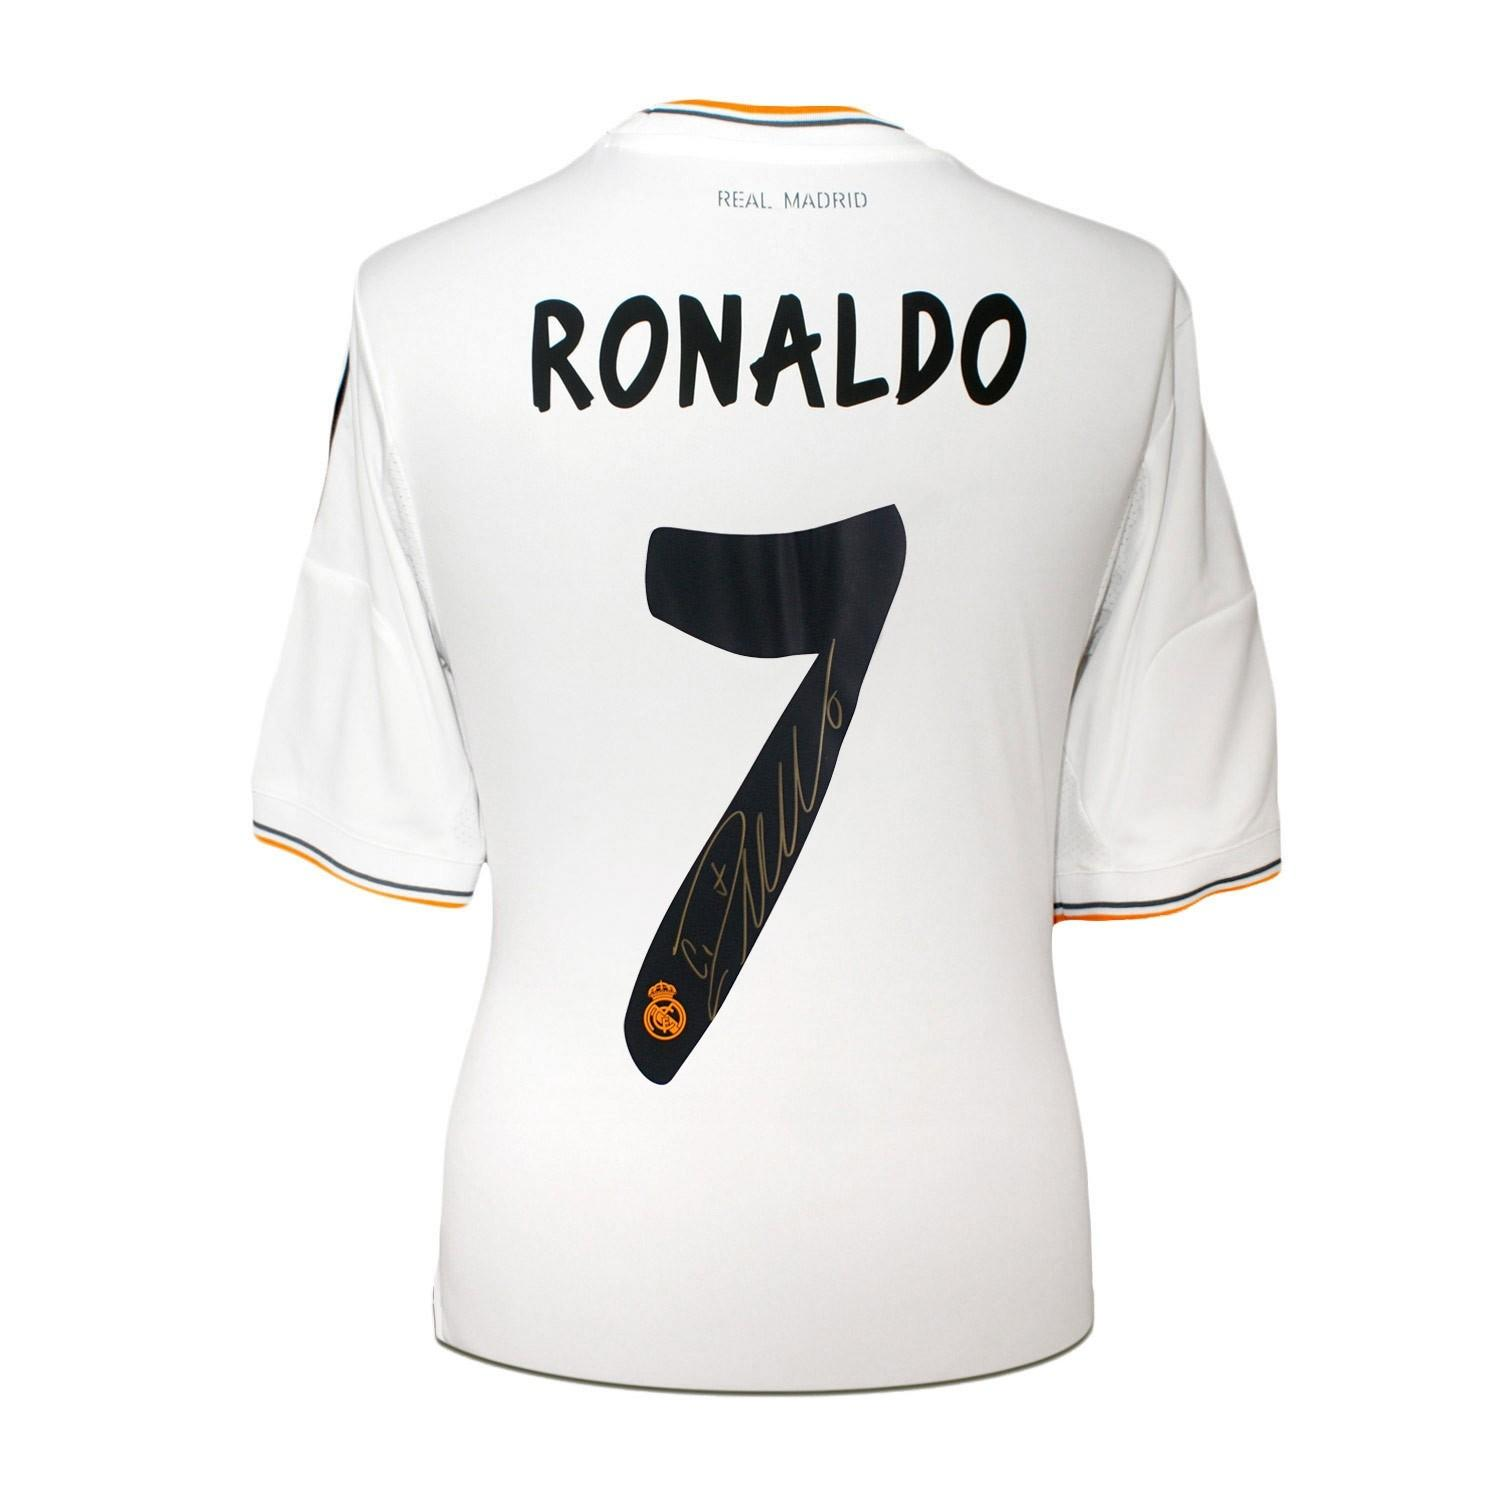 best authentic 7a5e7 f7db8 Cristiano Ronaldo Signed Real Madrid Football Shirt Reviews ...